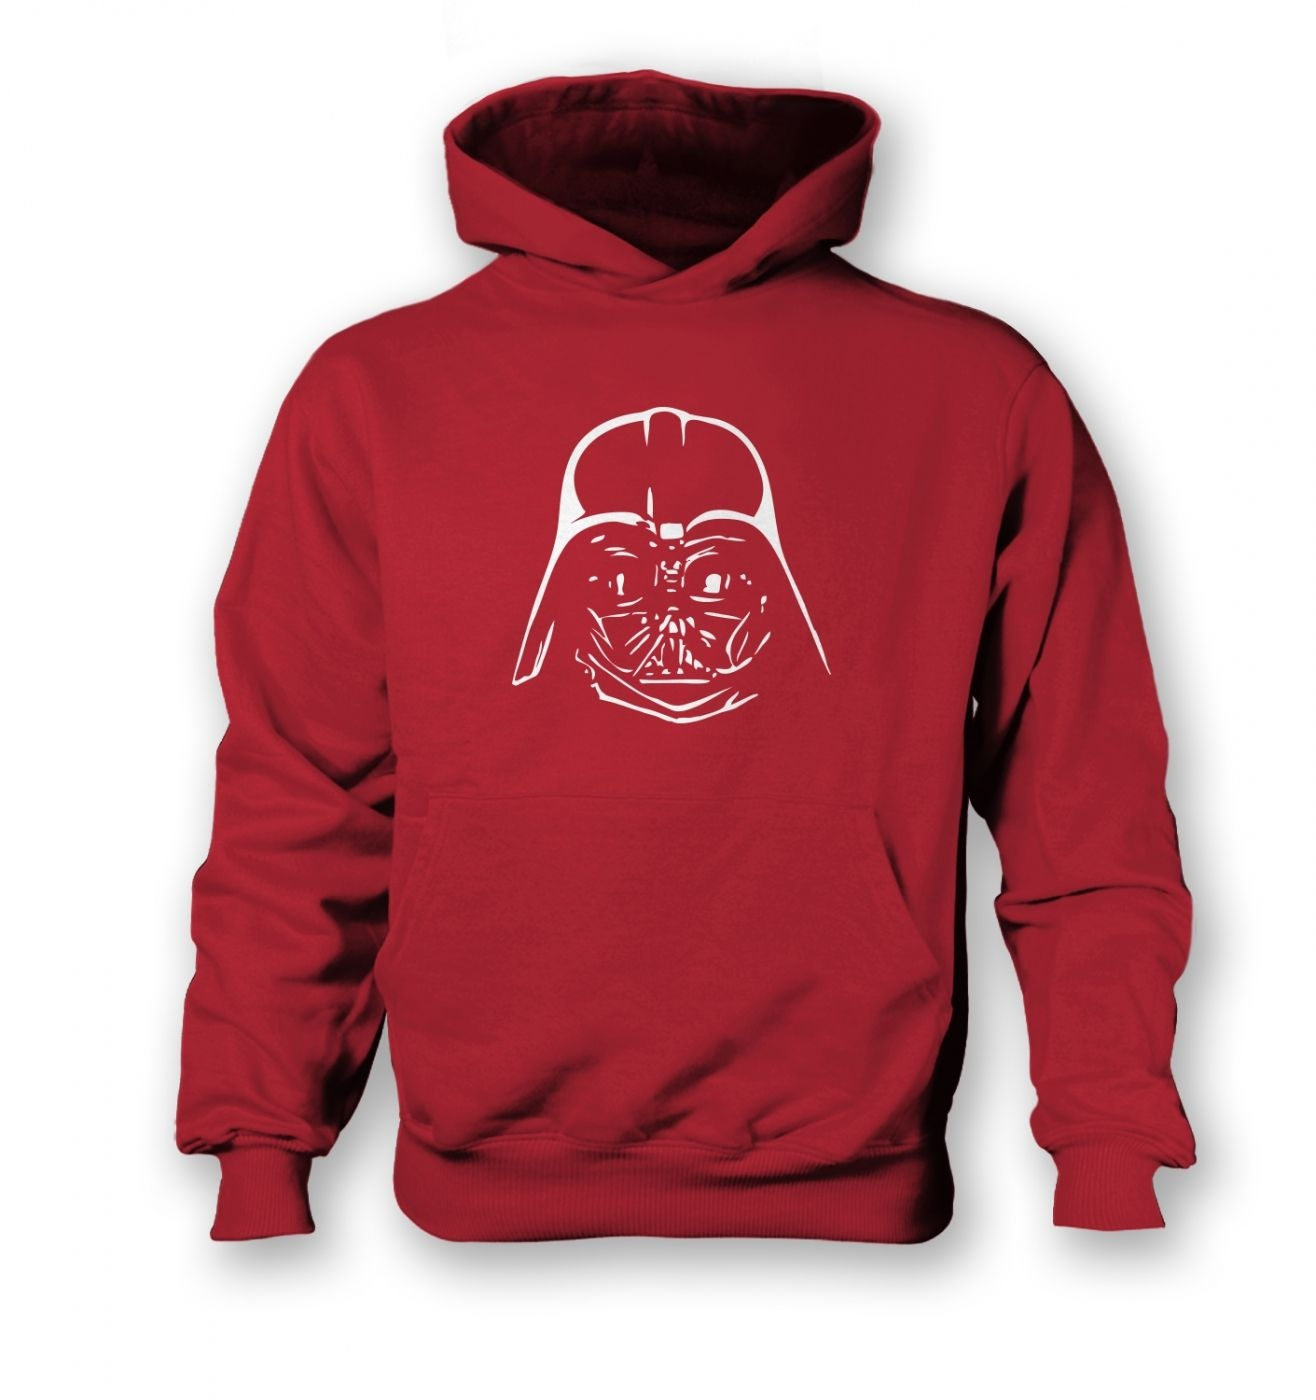 Dark Lord Helmet kids hoodie  - Inspired by Star Wars